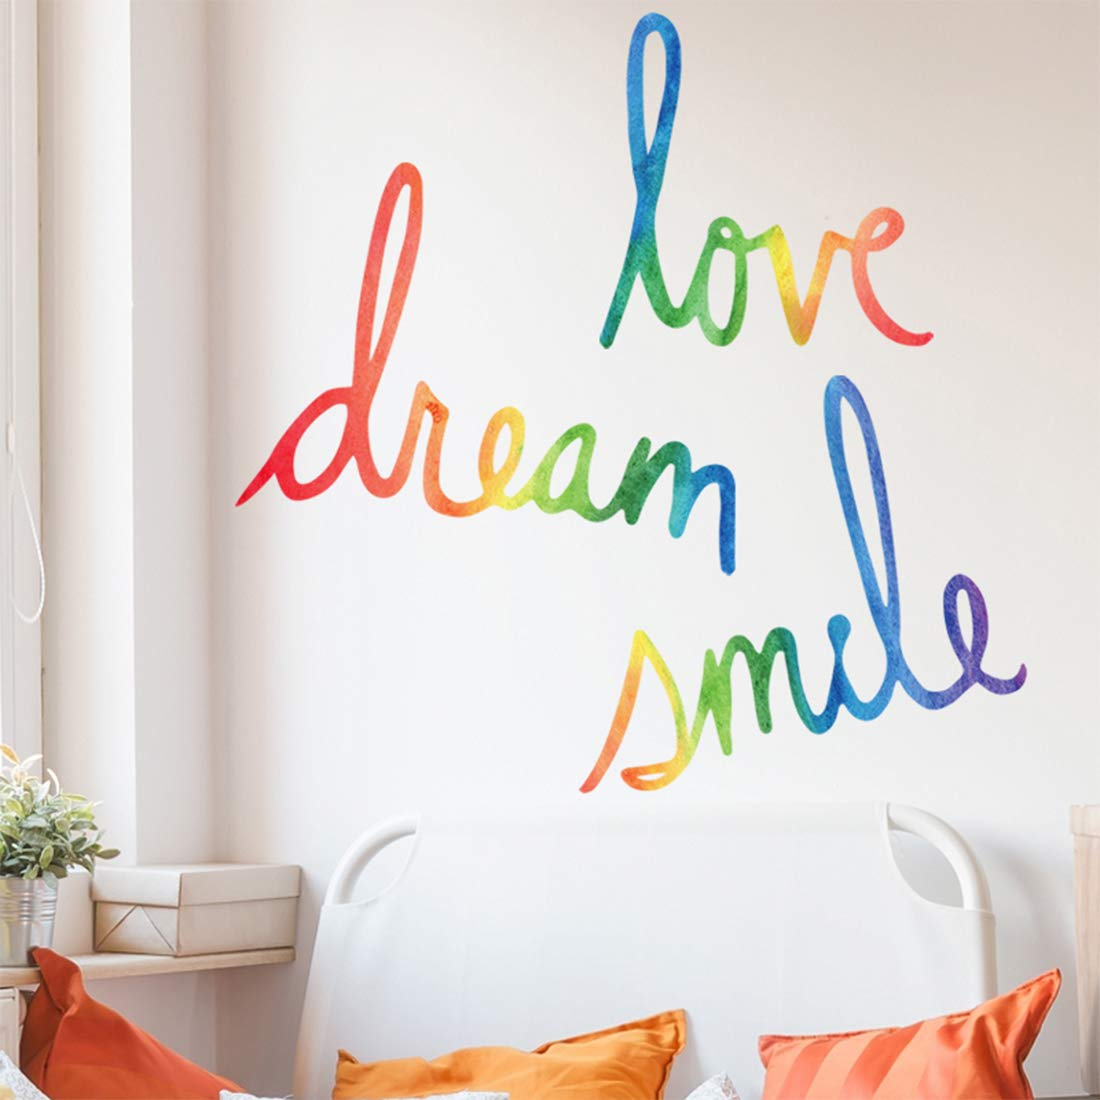 Inspirational Wall Decor Quotes for Living Room – Love Dream Smile – Wall Decor for Bedroom Classroom Playroom Nursery Girls Boys Room Wall Decals Decorations